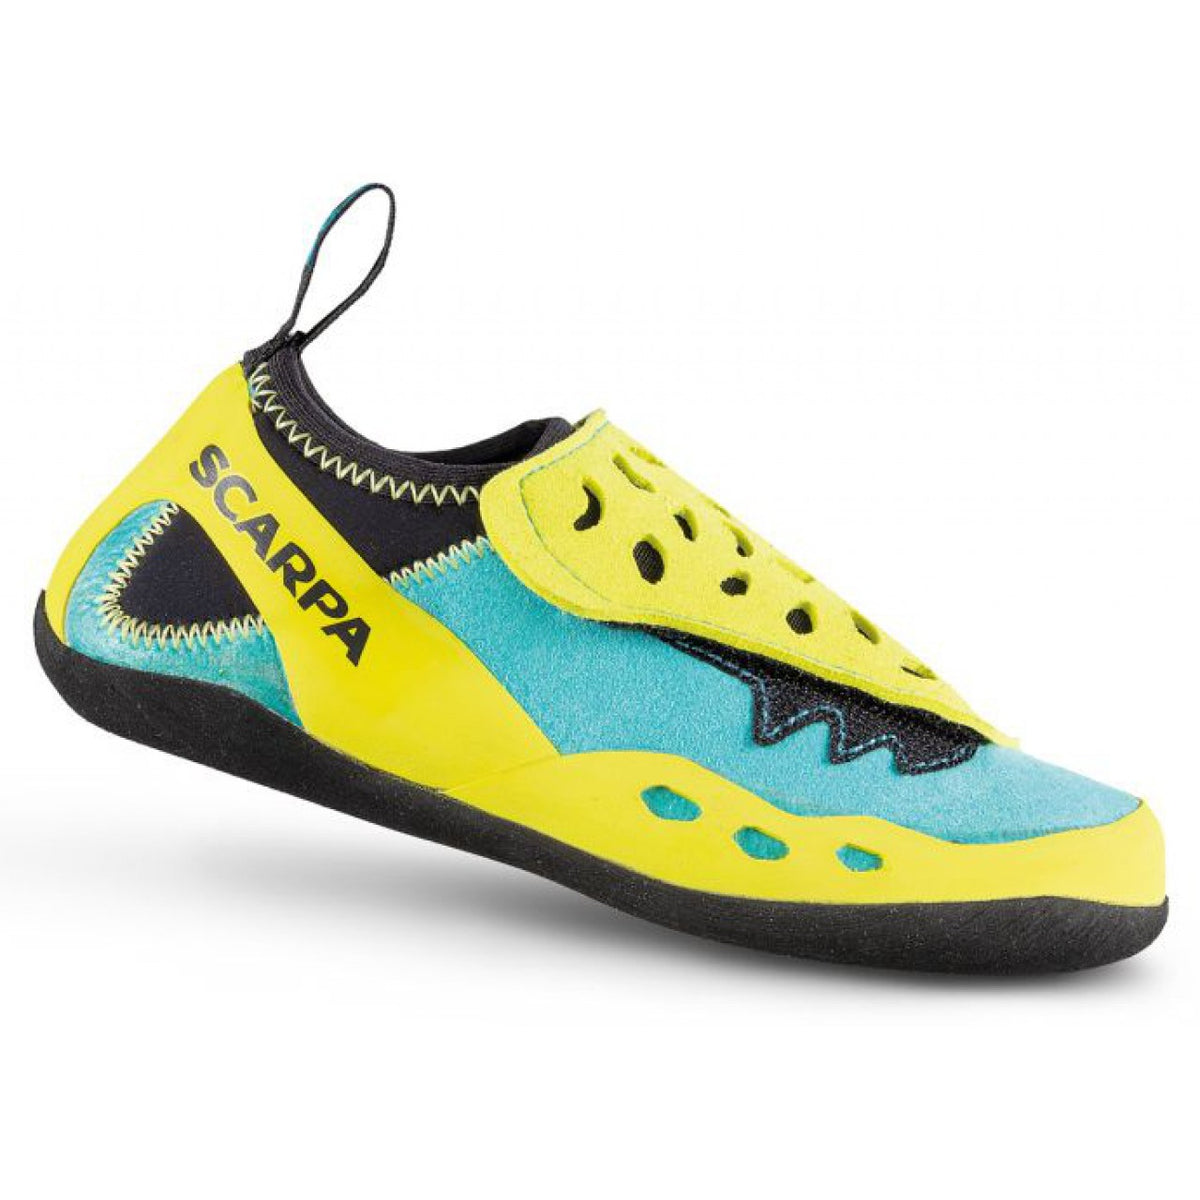 Scarpa Piki Kids climbing shoe, outer side view in yellow, green and black colour